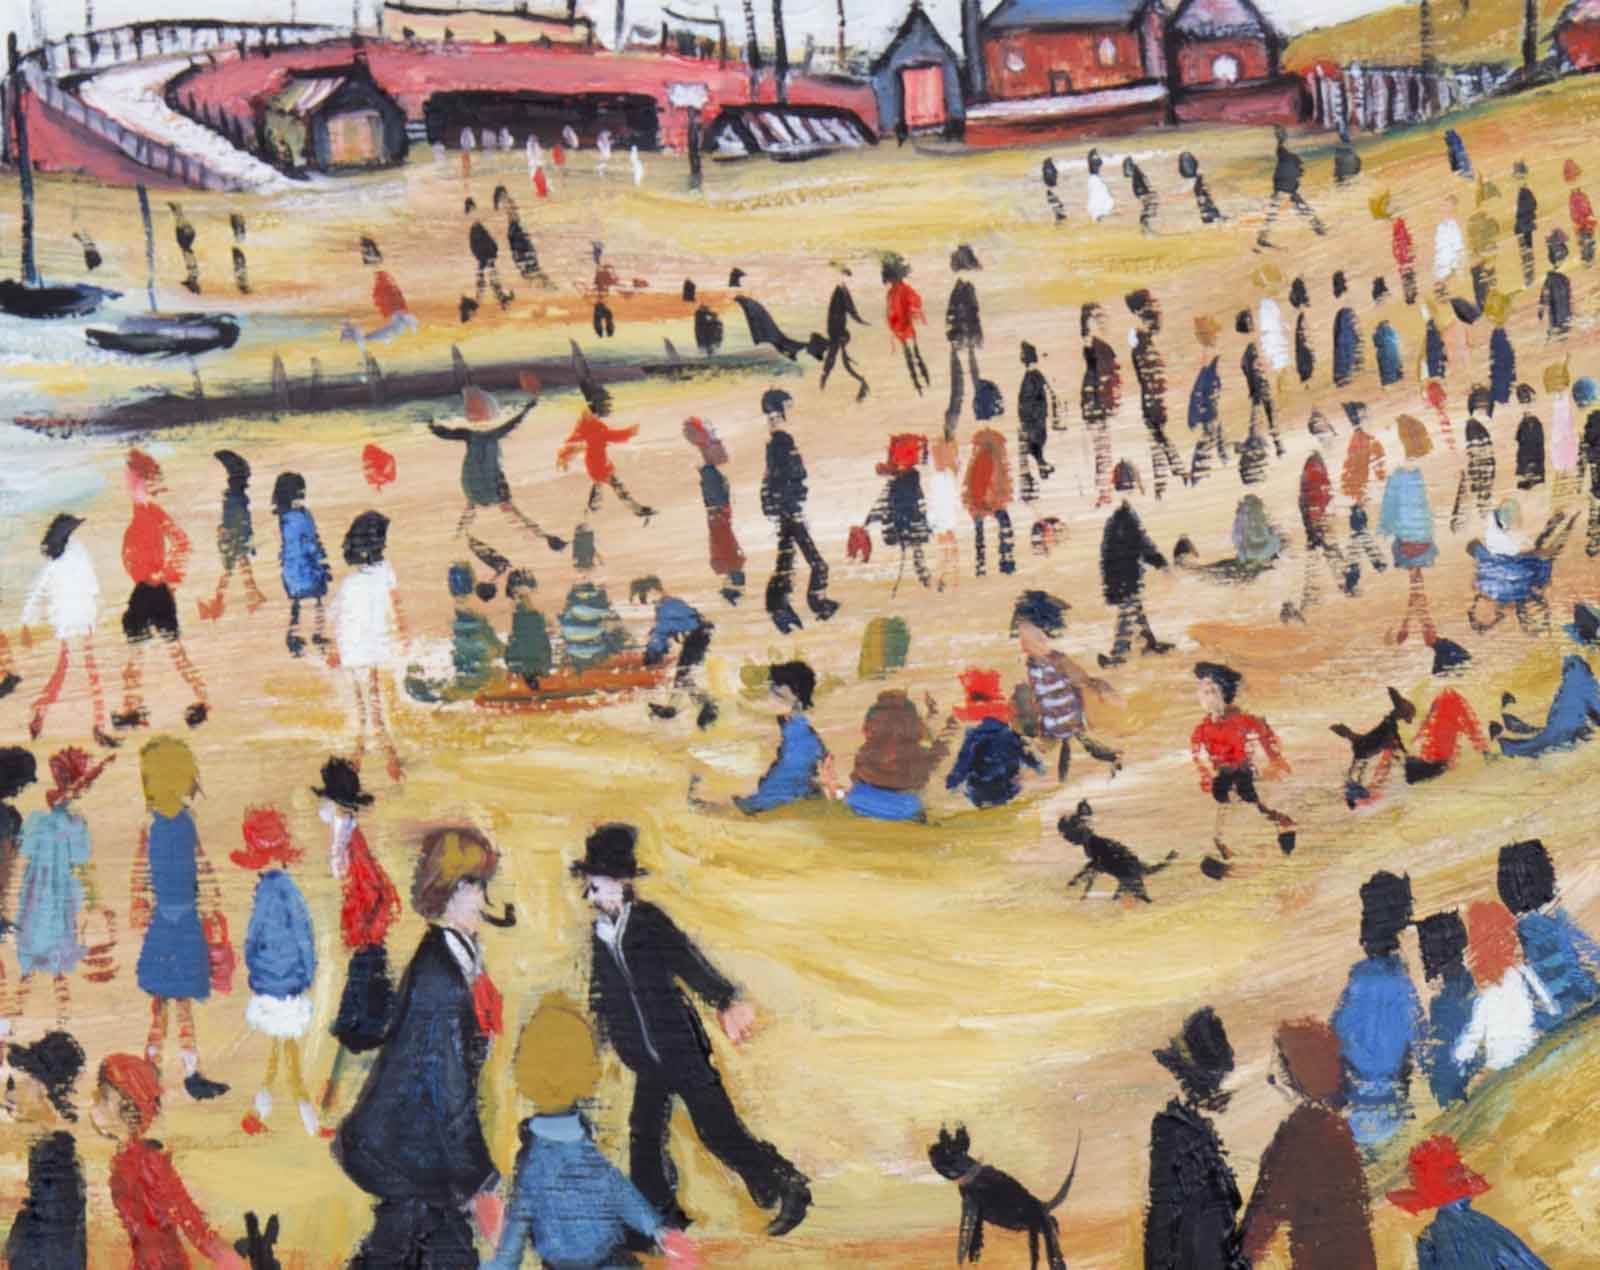 Beach Scene II after L.S.Lowry